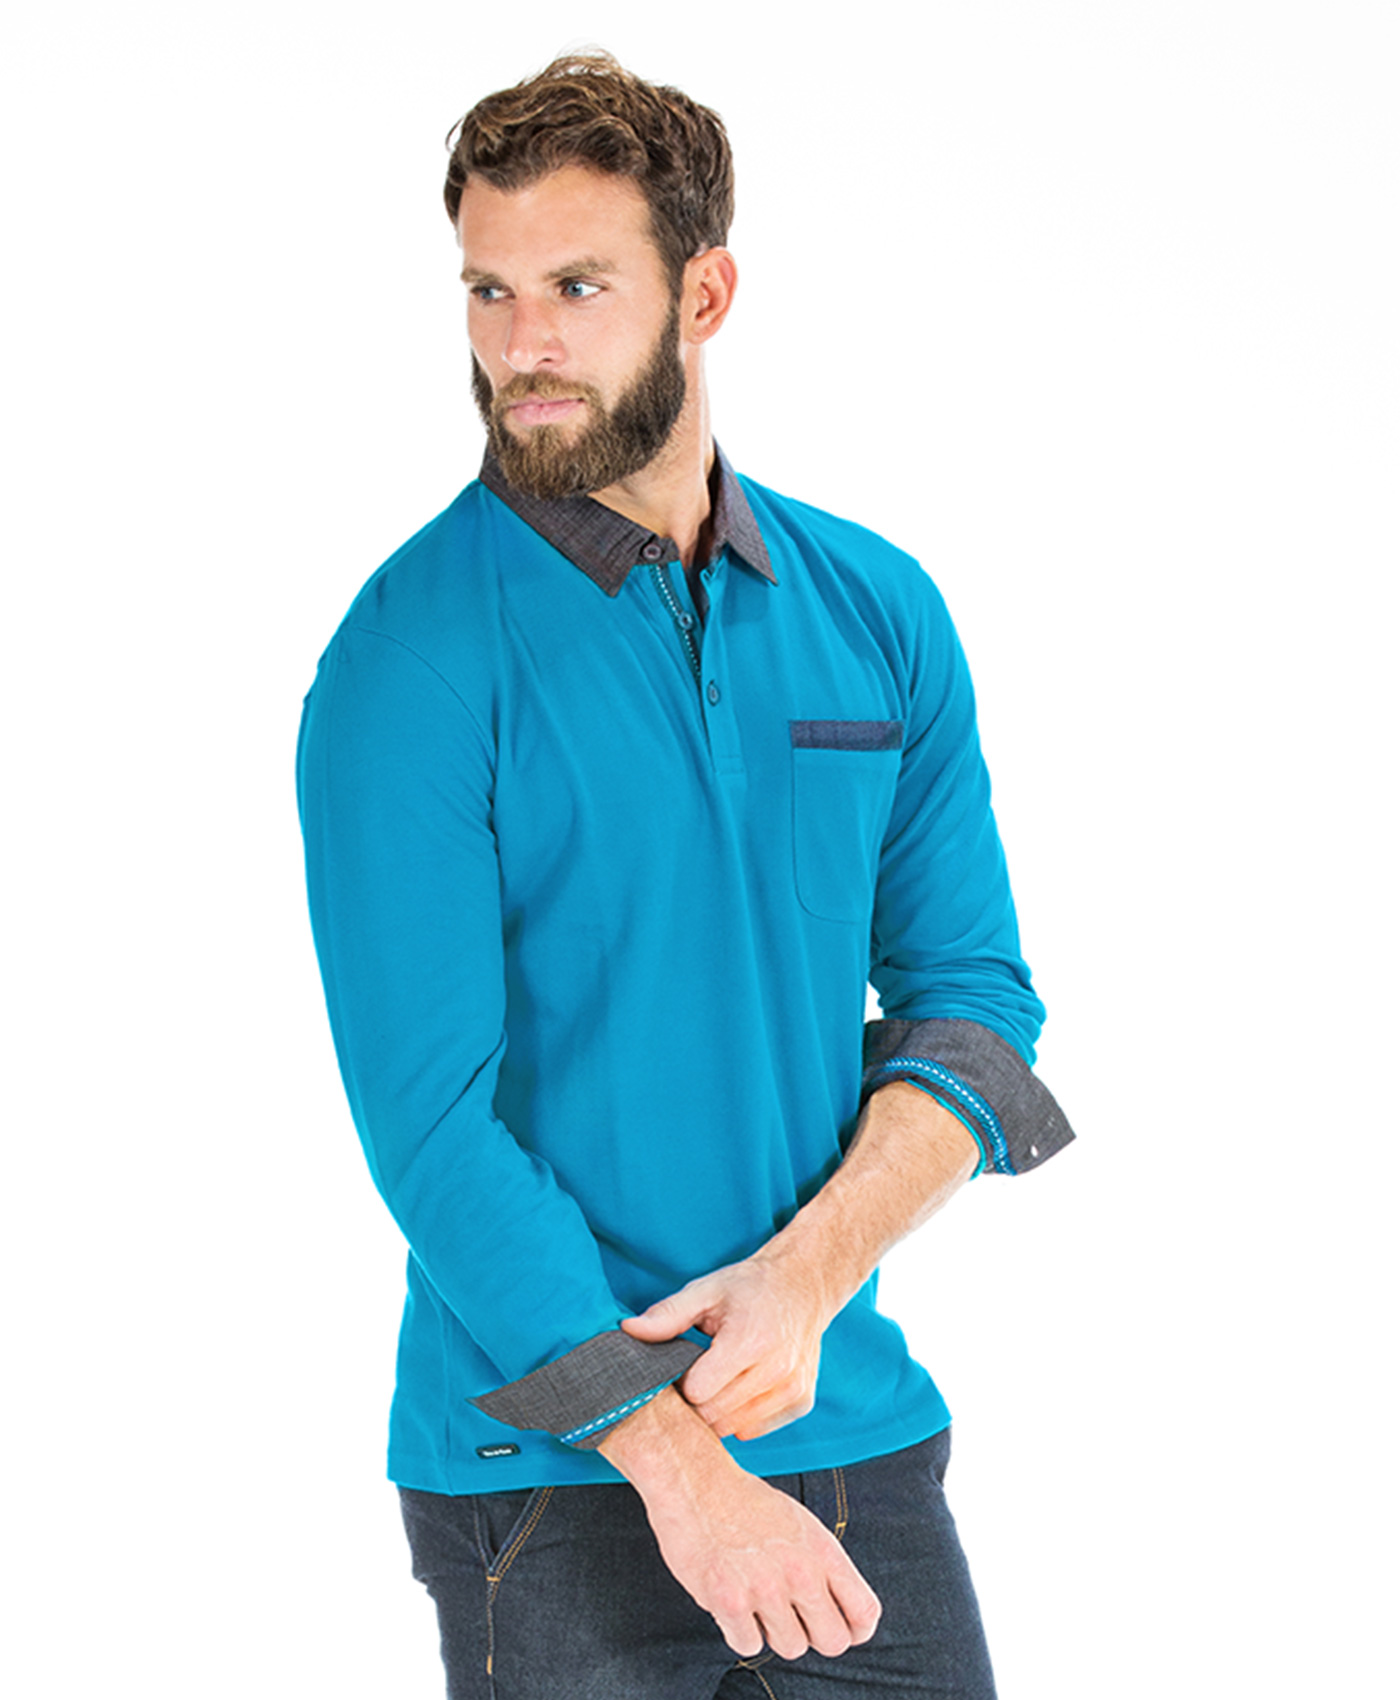 Polo turquoise homme - Mode marine Promotions